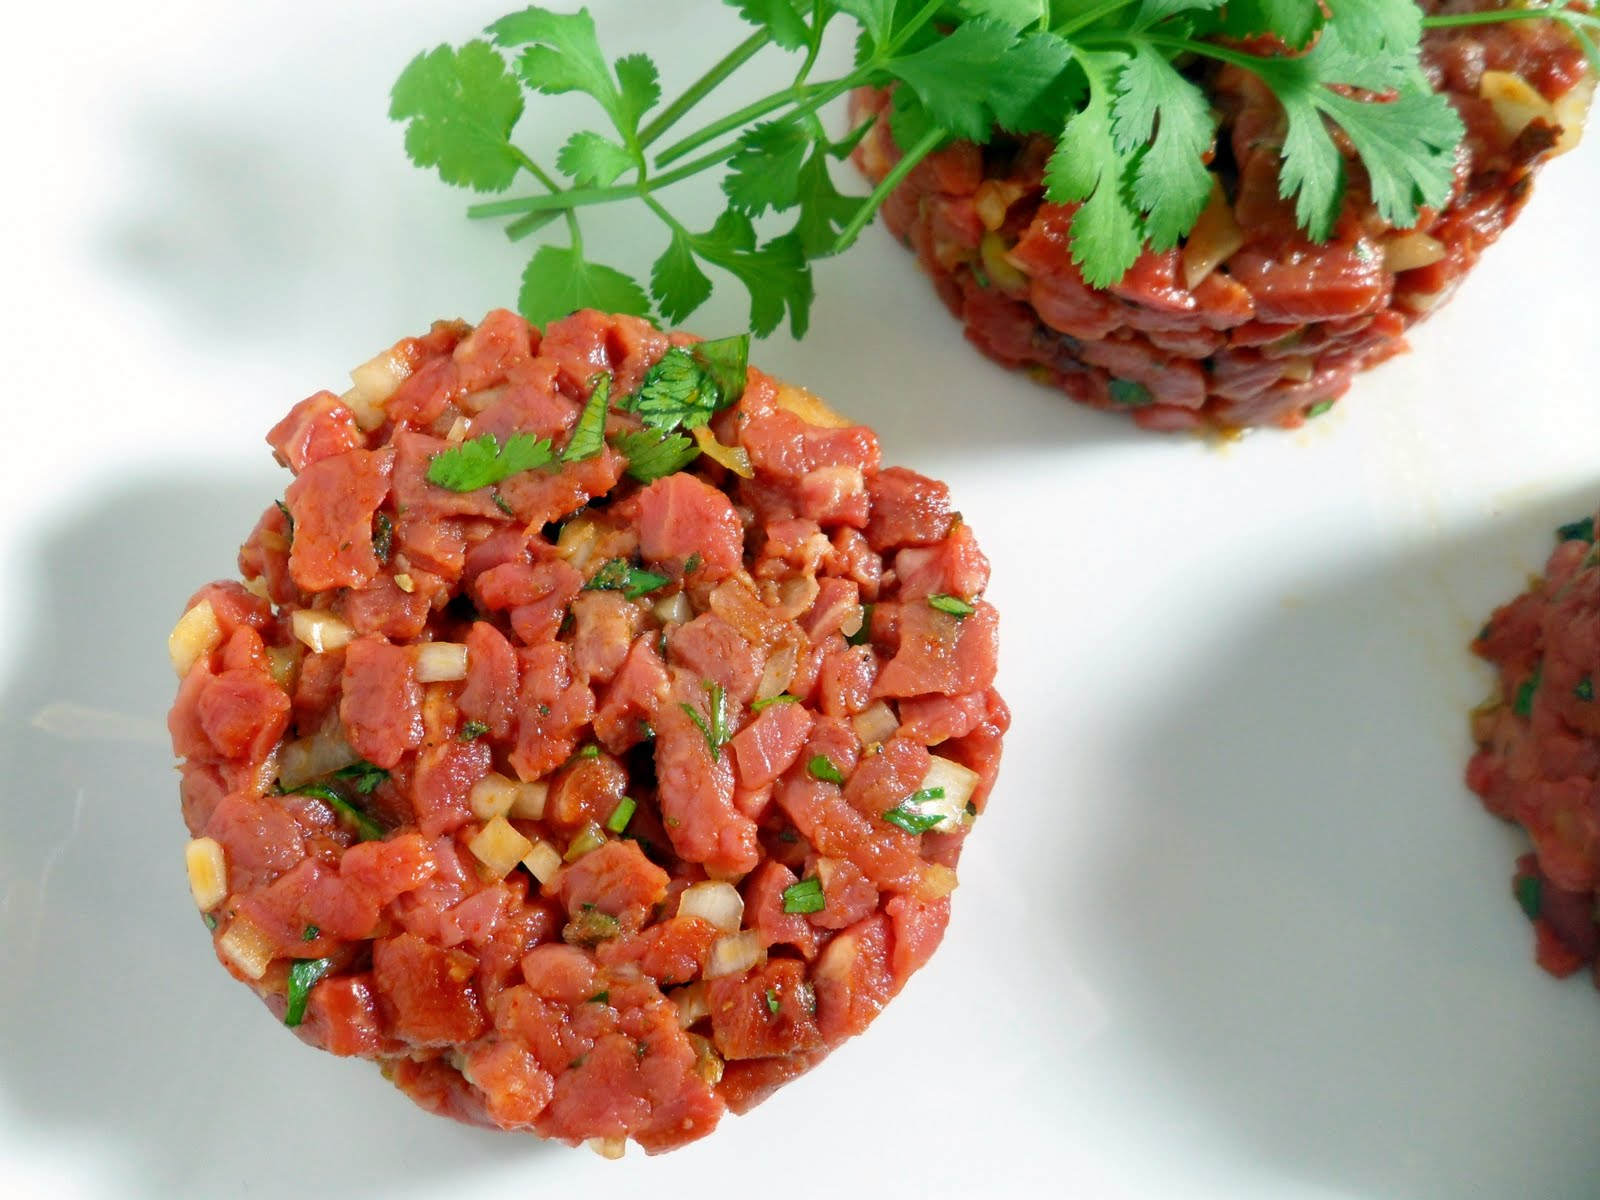 Steak Tartare Images & Pictures - Becuo